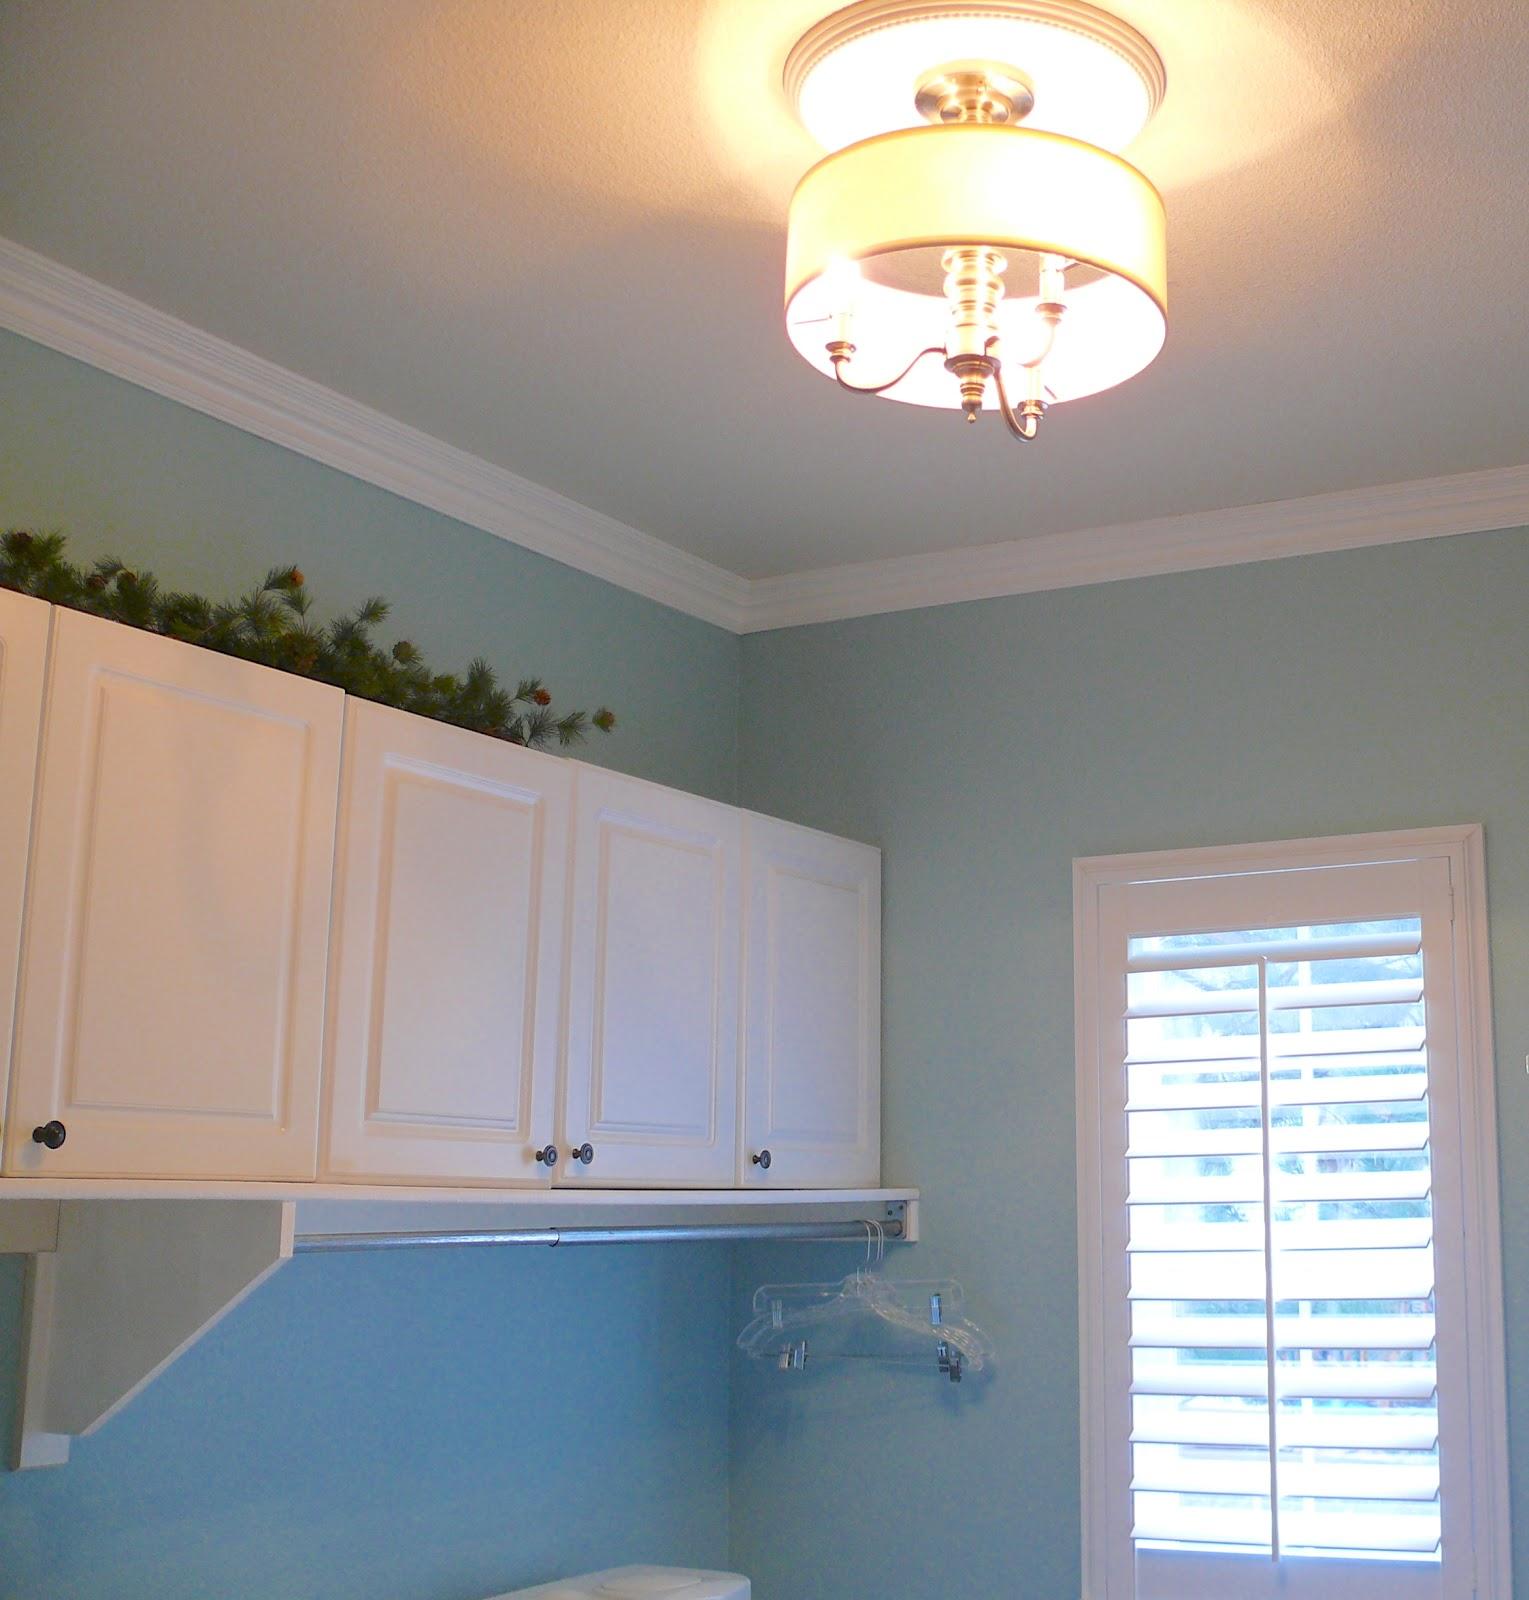 Fascinating Behr Ceiling Paint Home Depot Simple Design